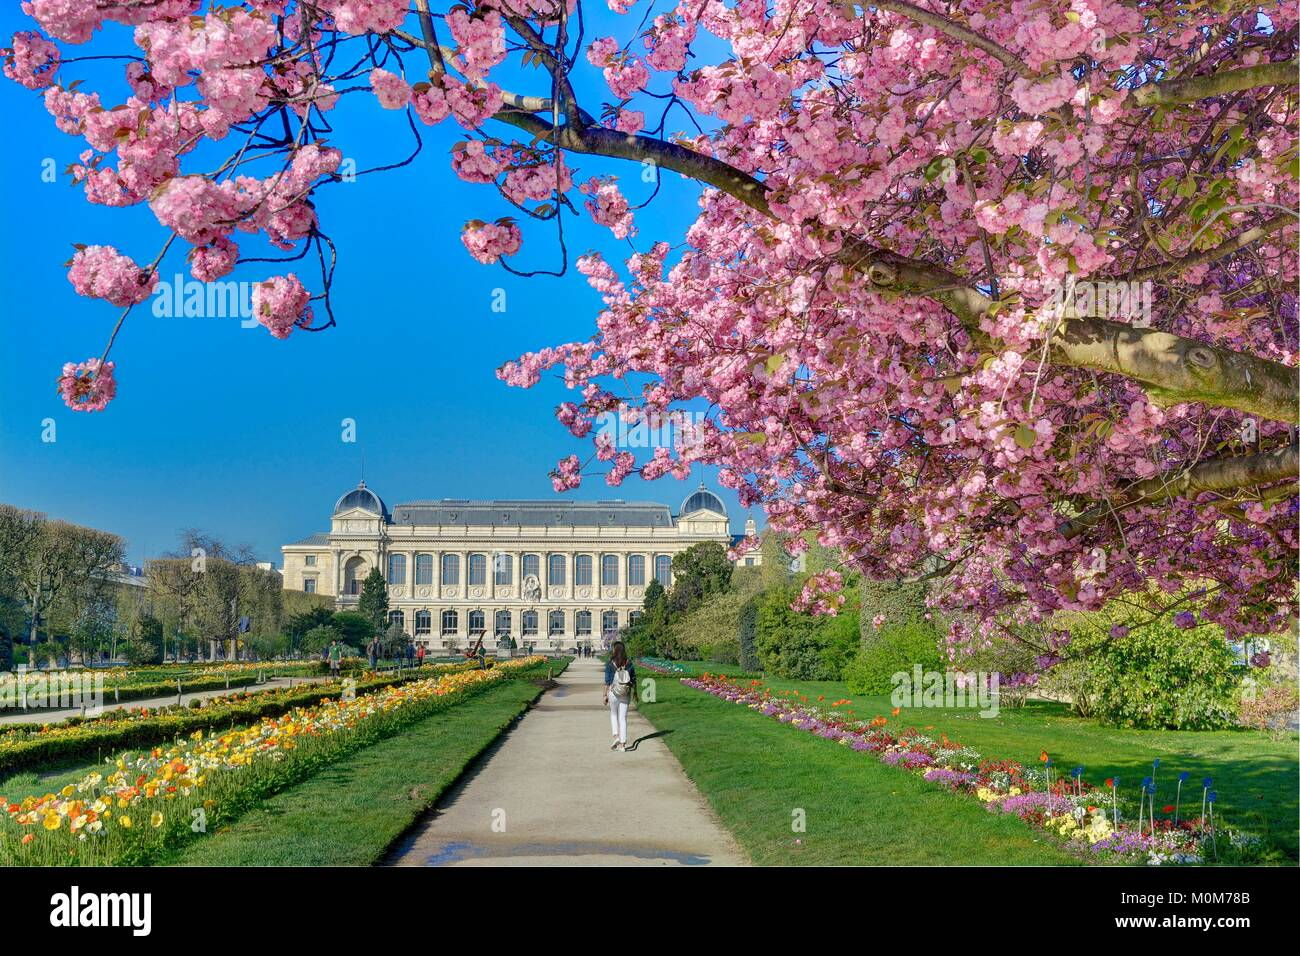 France,Paris,the Plants Gardens with a japanese cherry-tree (Prunus serrulata) in blossom and the Grand Gallery - Stock Image